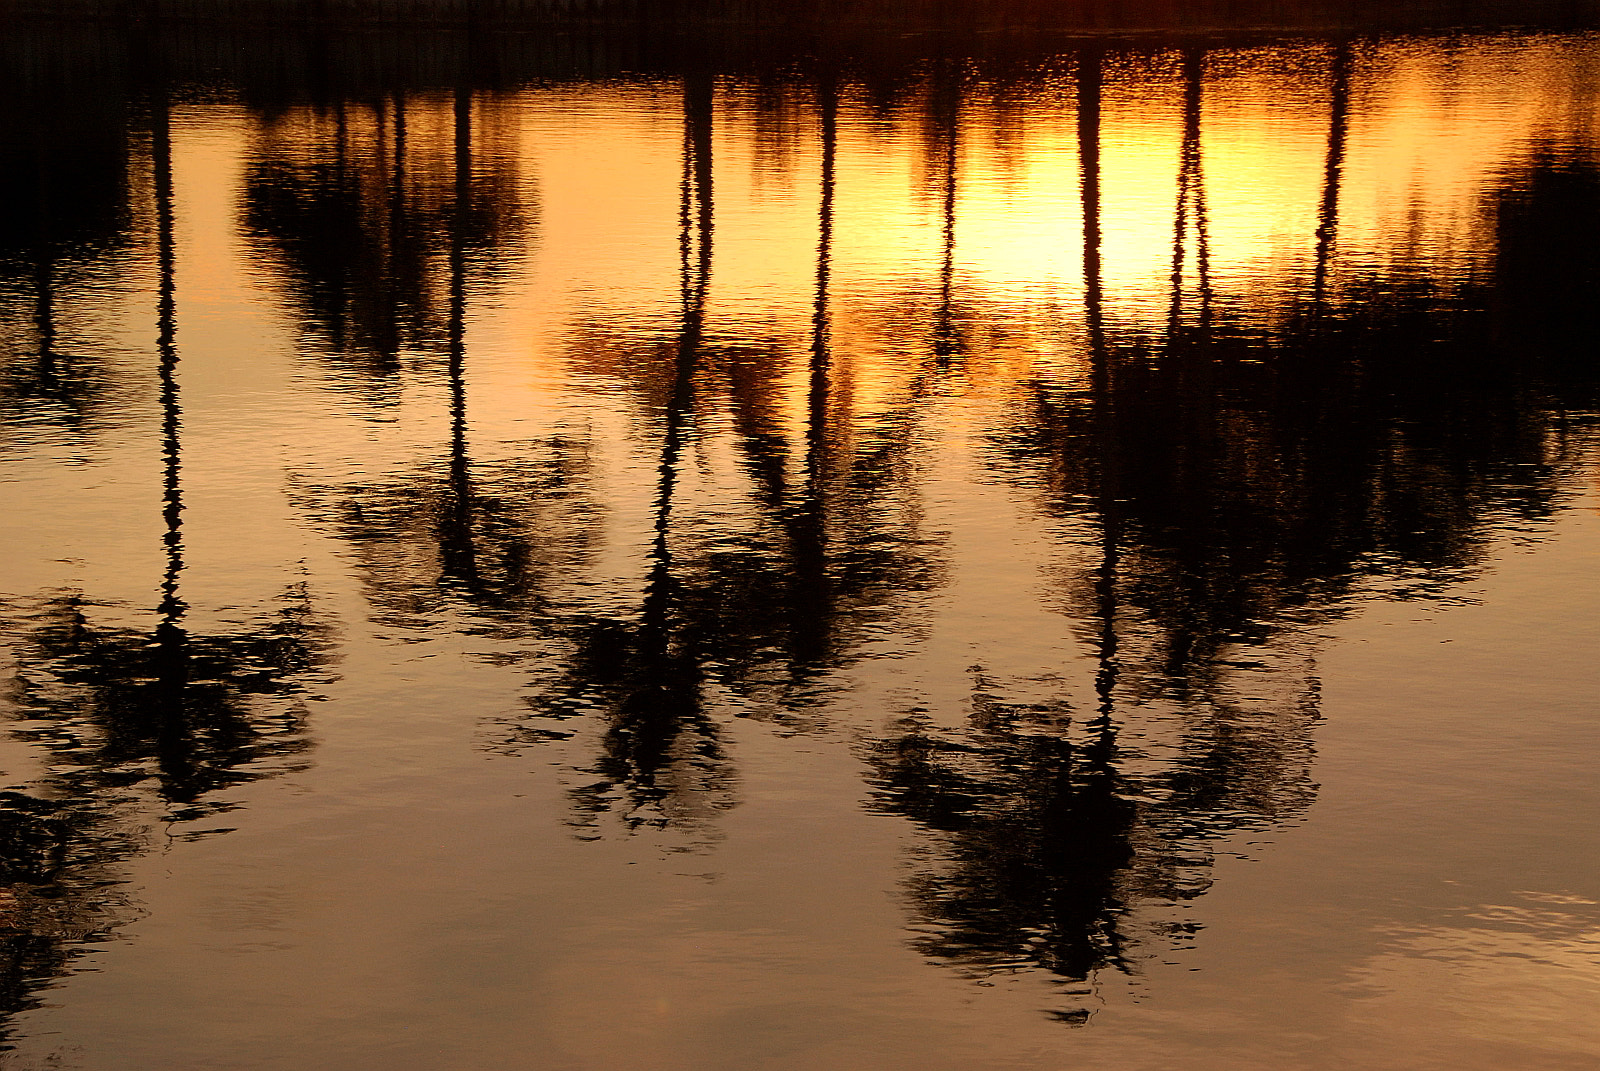 Photograph Evening Shadows by Lorenzo Cassina on 500px